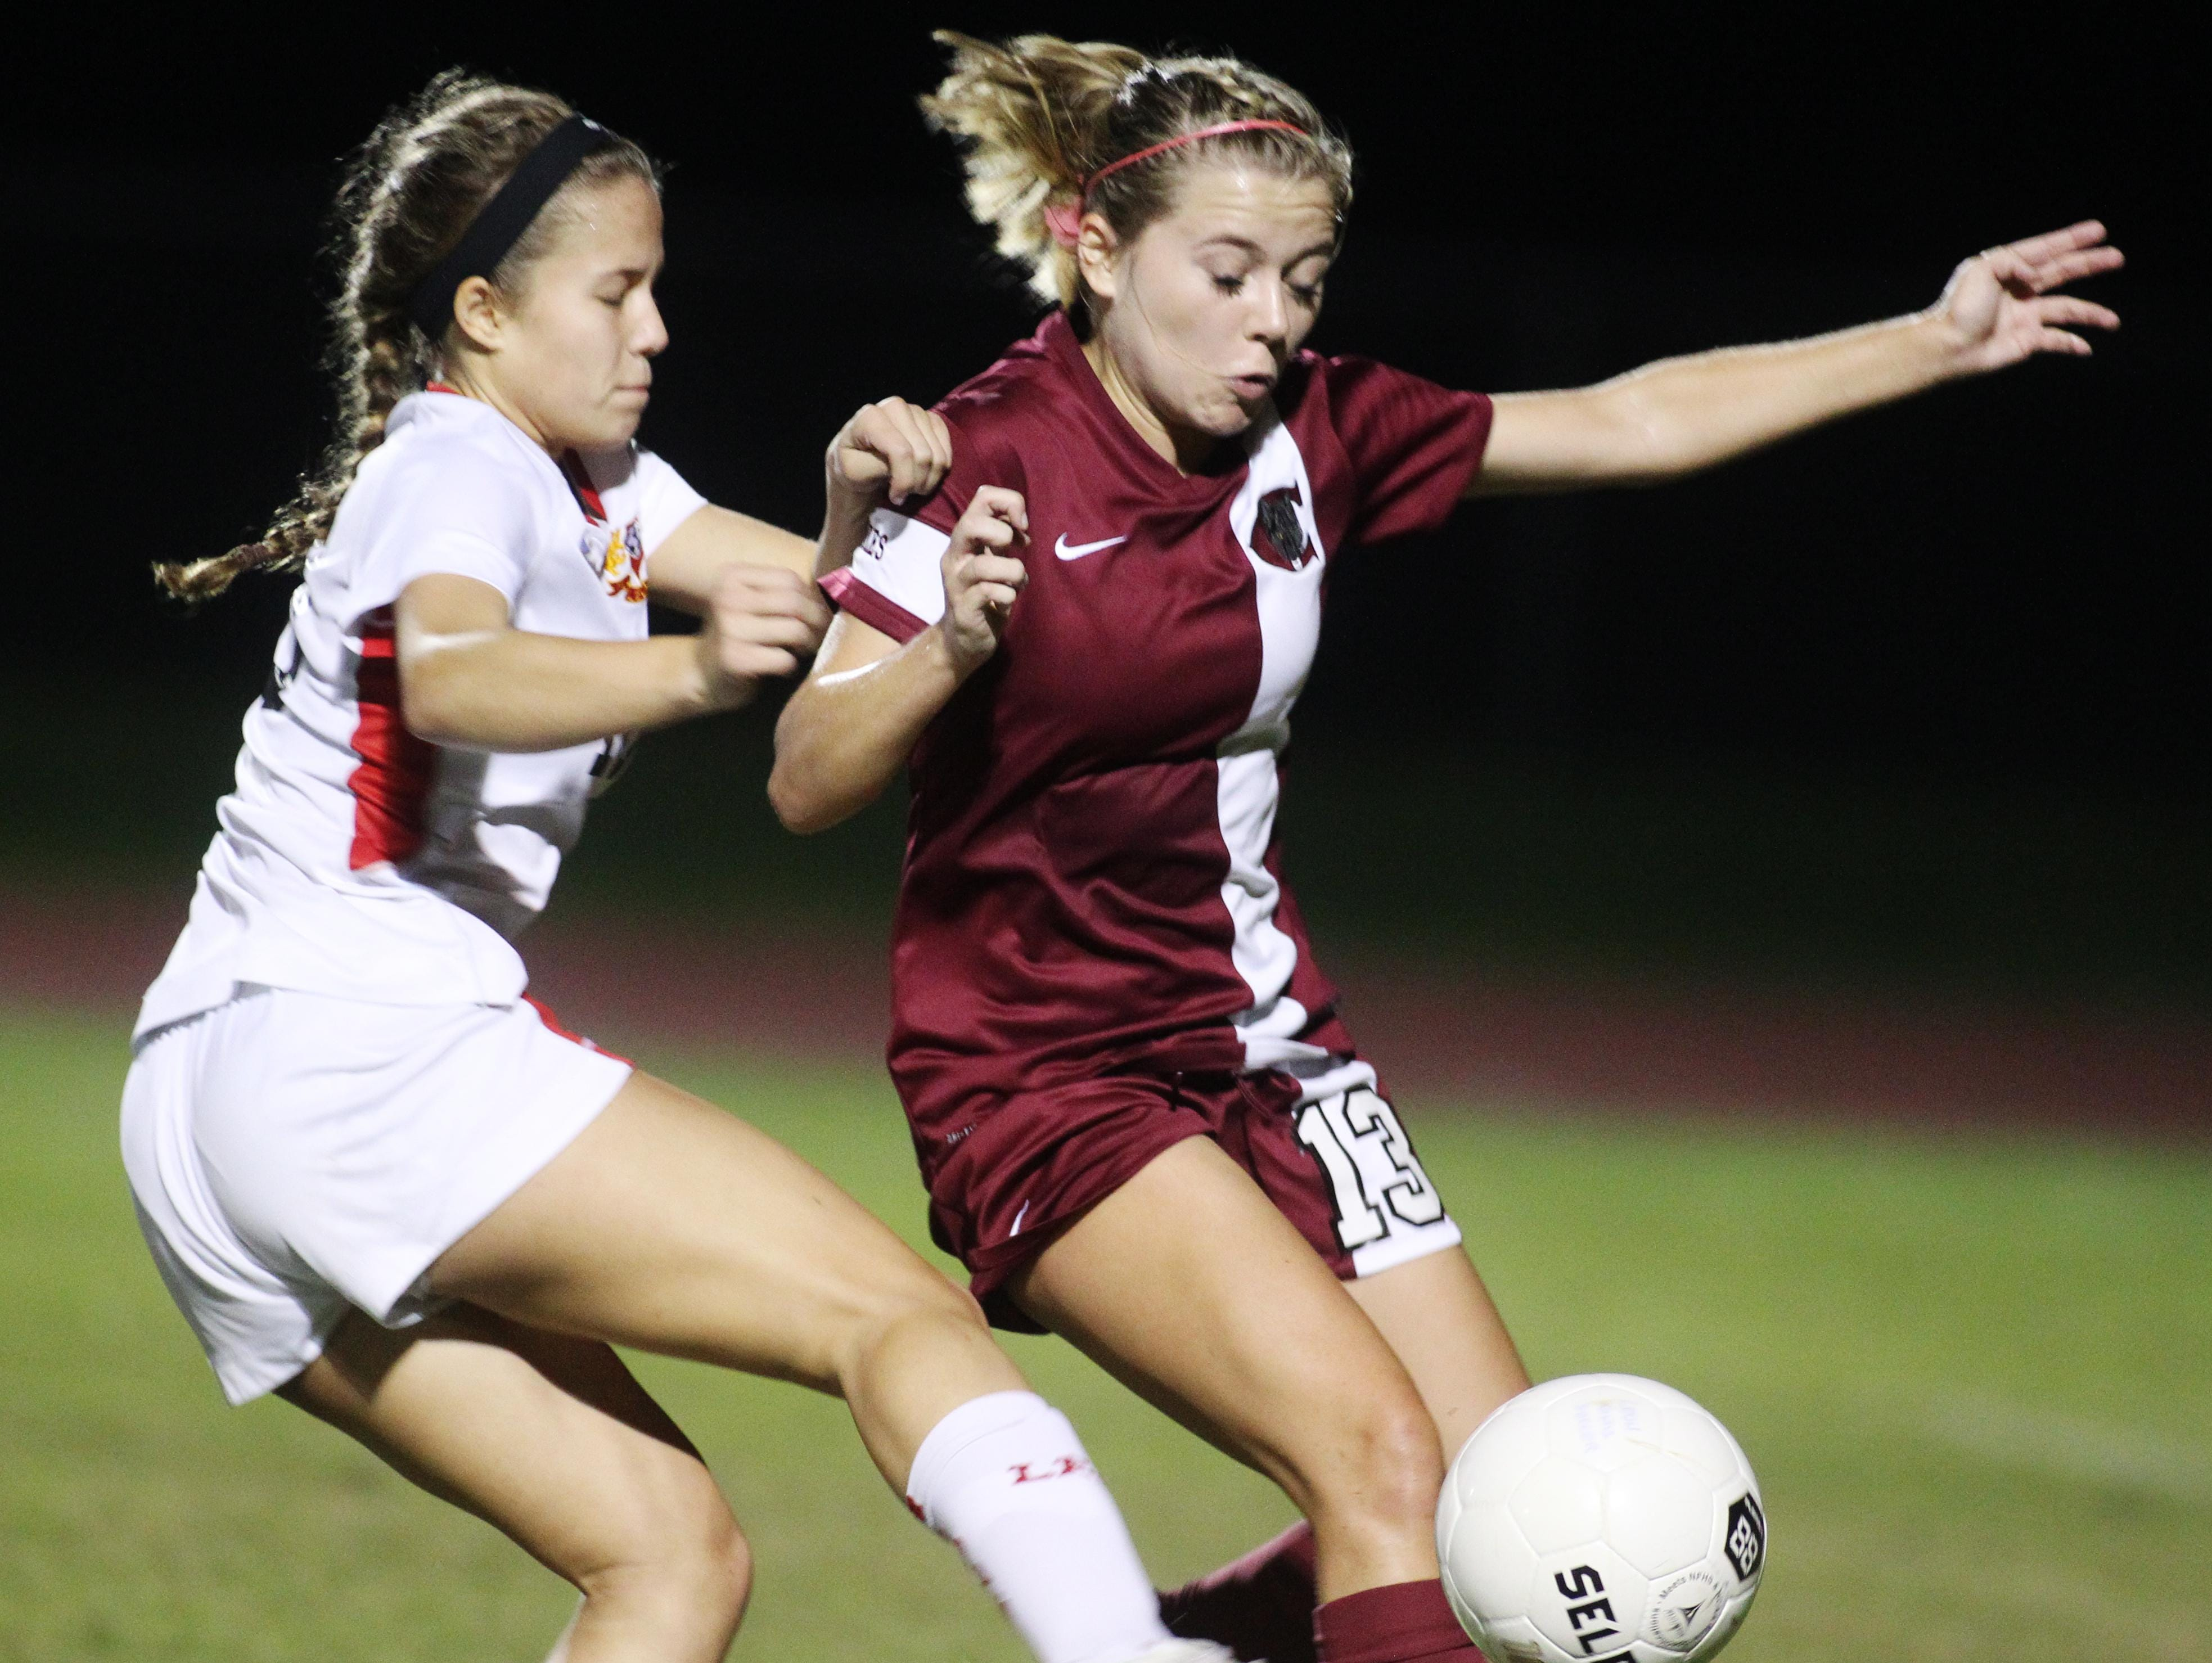 Chiles' Kinsley Emerson battles Leon's Lilli Hanks for the ball in a game between Leon and Chiles.